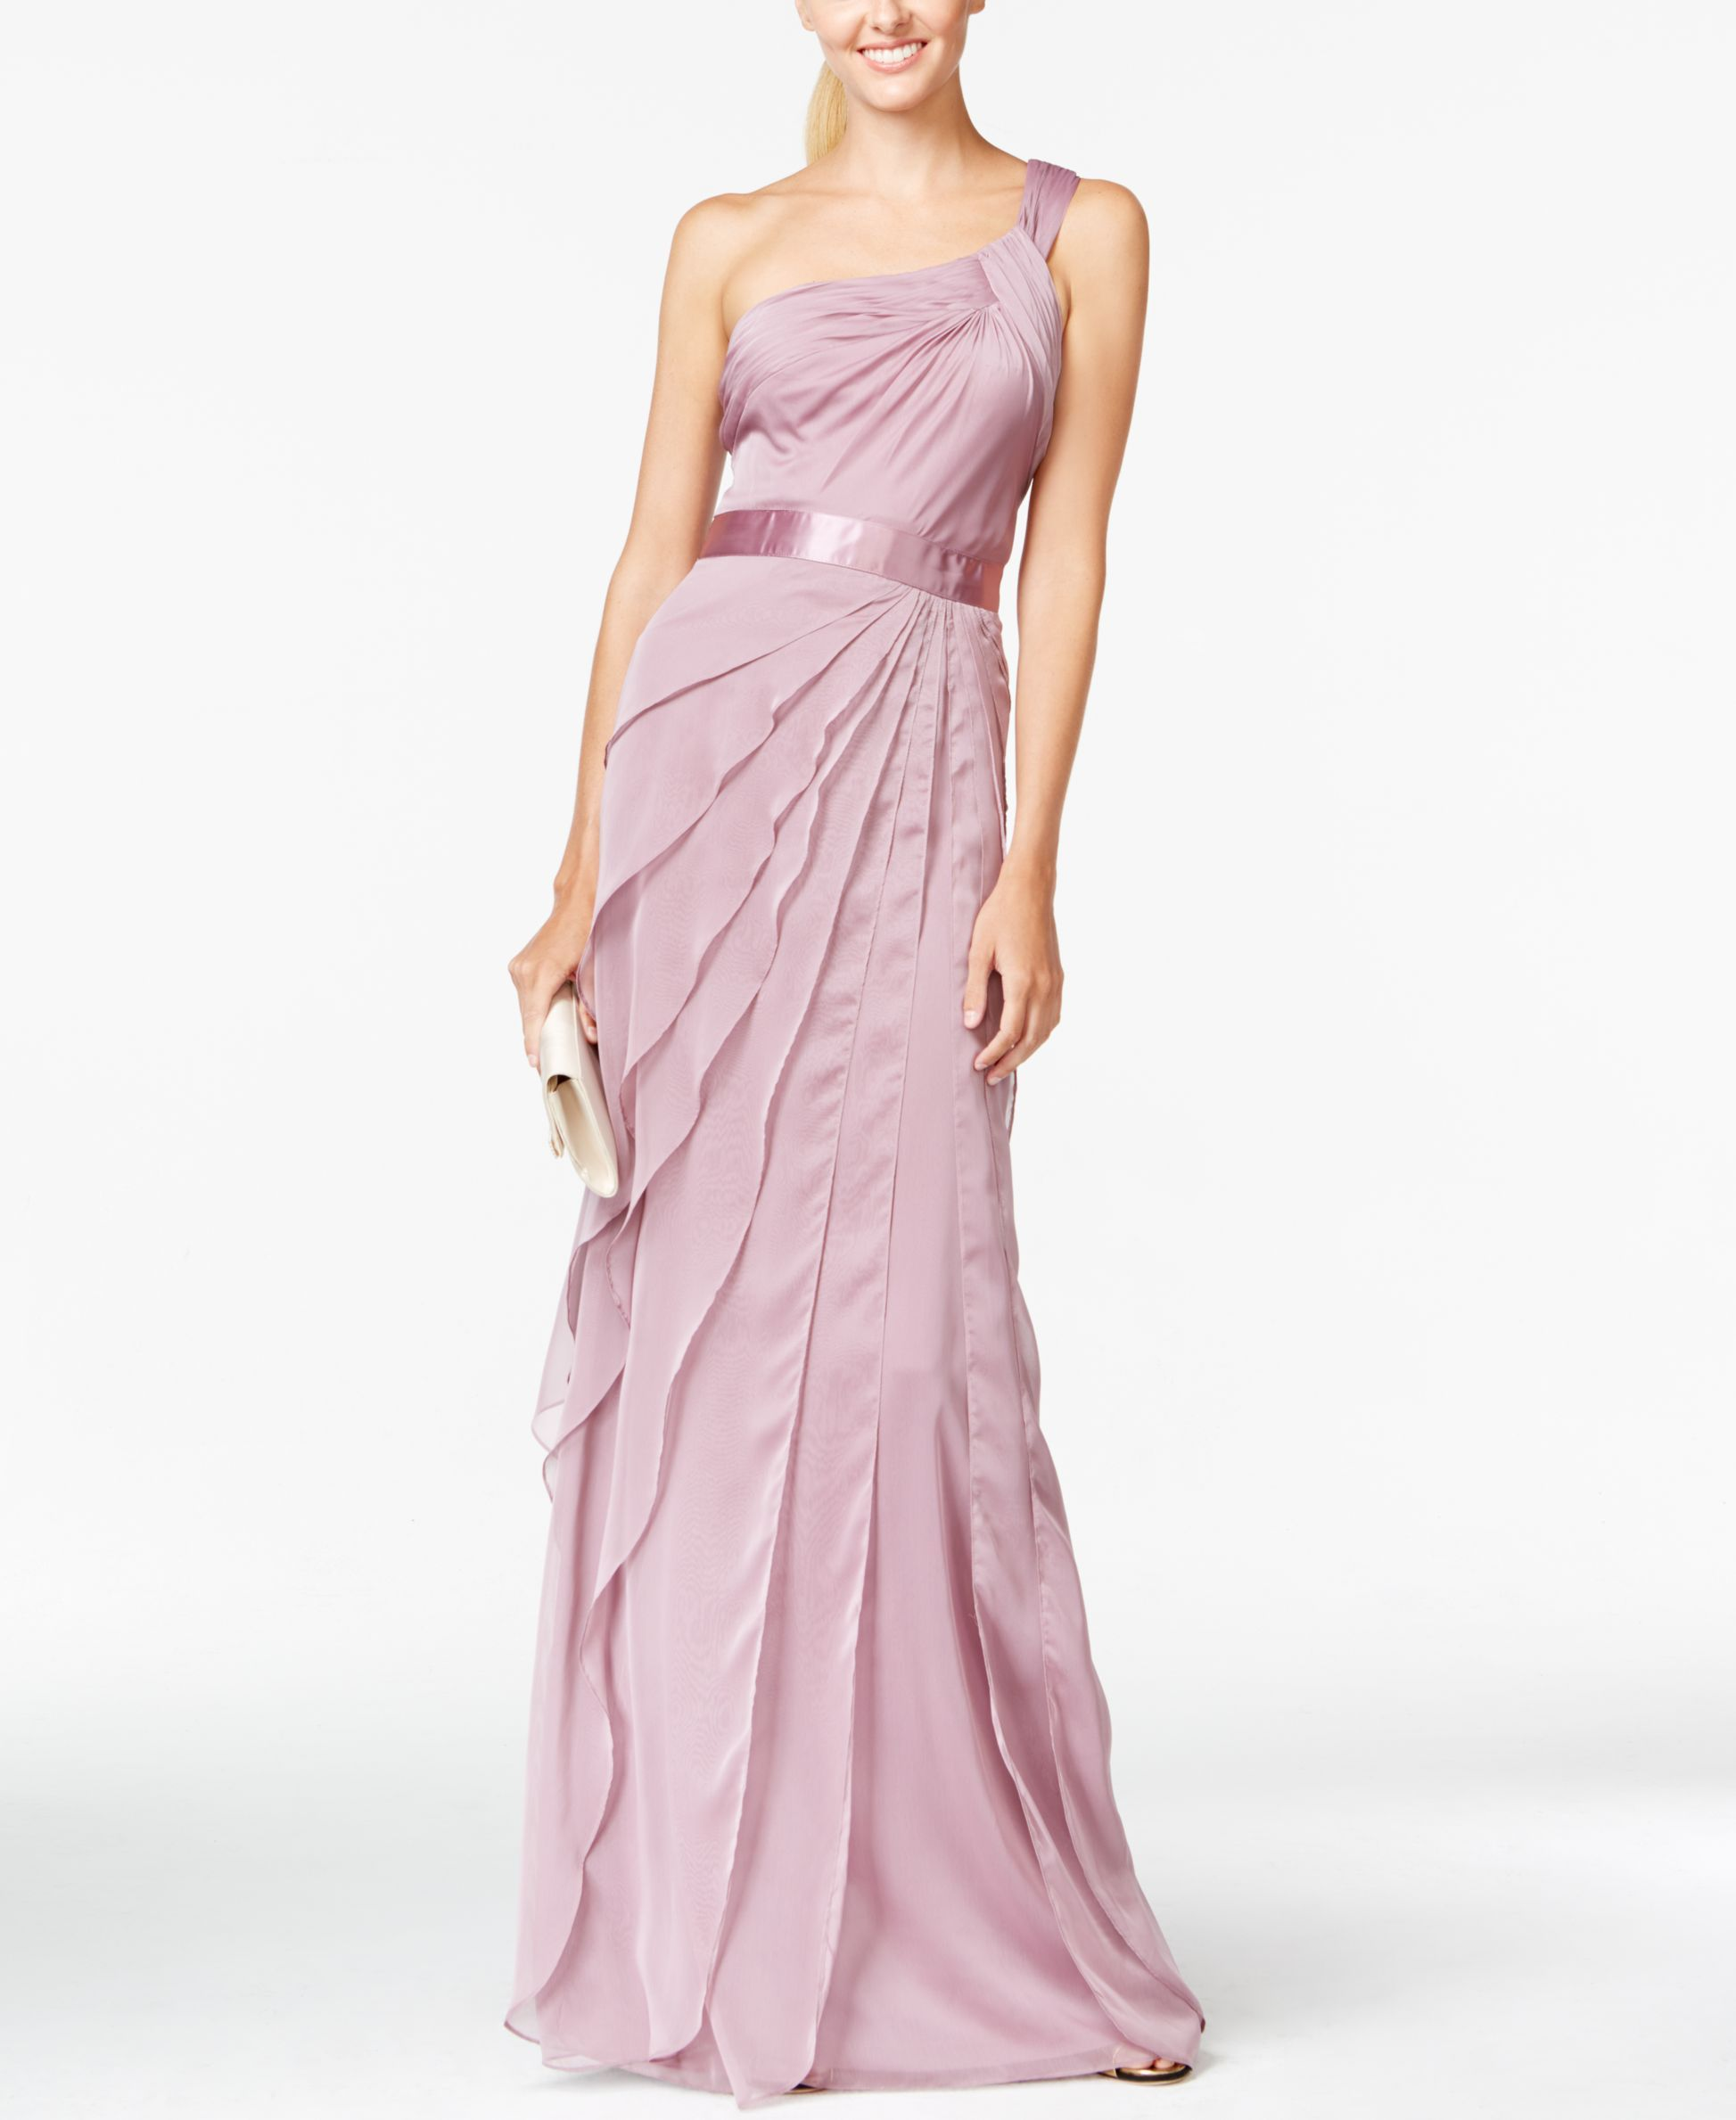 Bridesmaids adrianna papell oneshoulder tiered chiffon gown